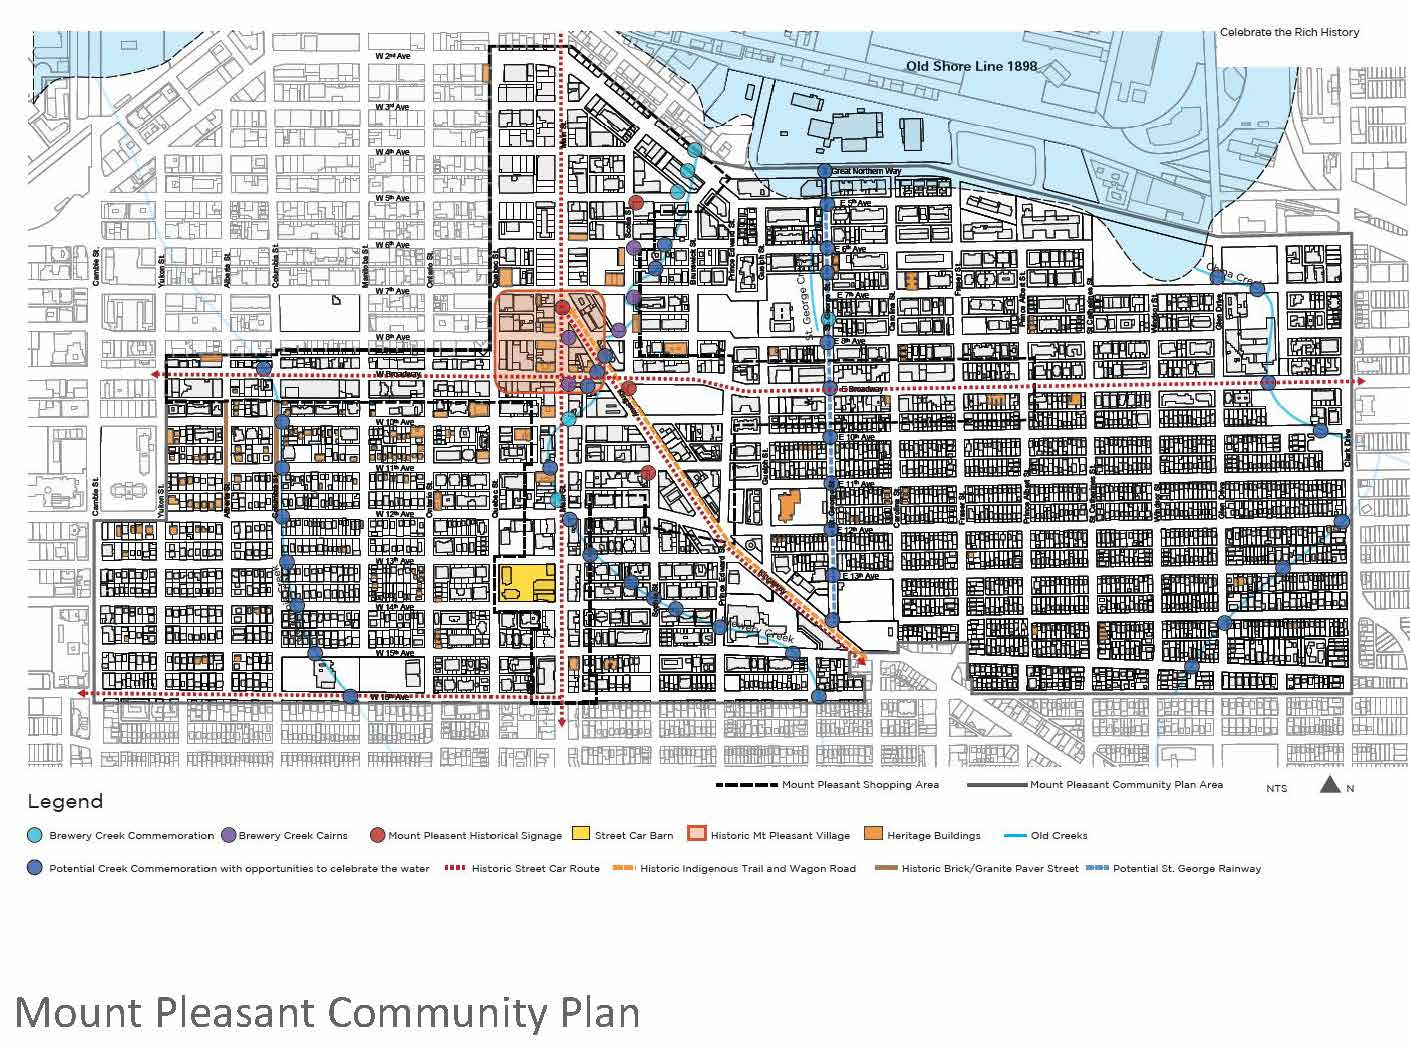 We were pleased to have the Rainway included in the Mt Pleasant Community Plan in 2013. The plan recognizes the Rainway as a potential public realm project that celebrates the historical creeks in the neighbourhood.